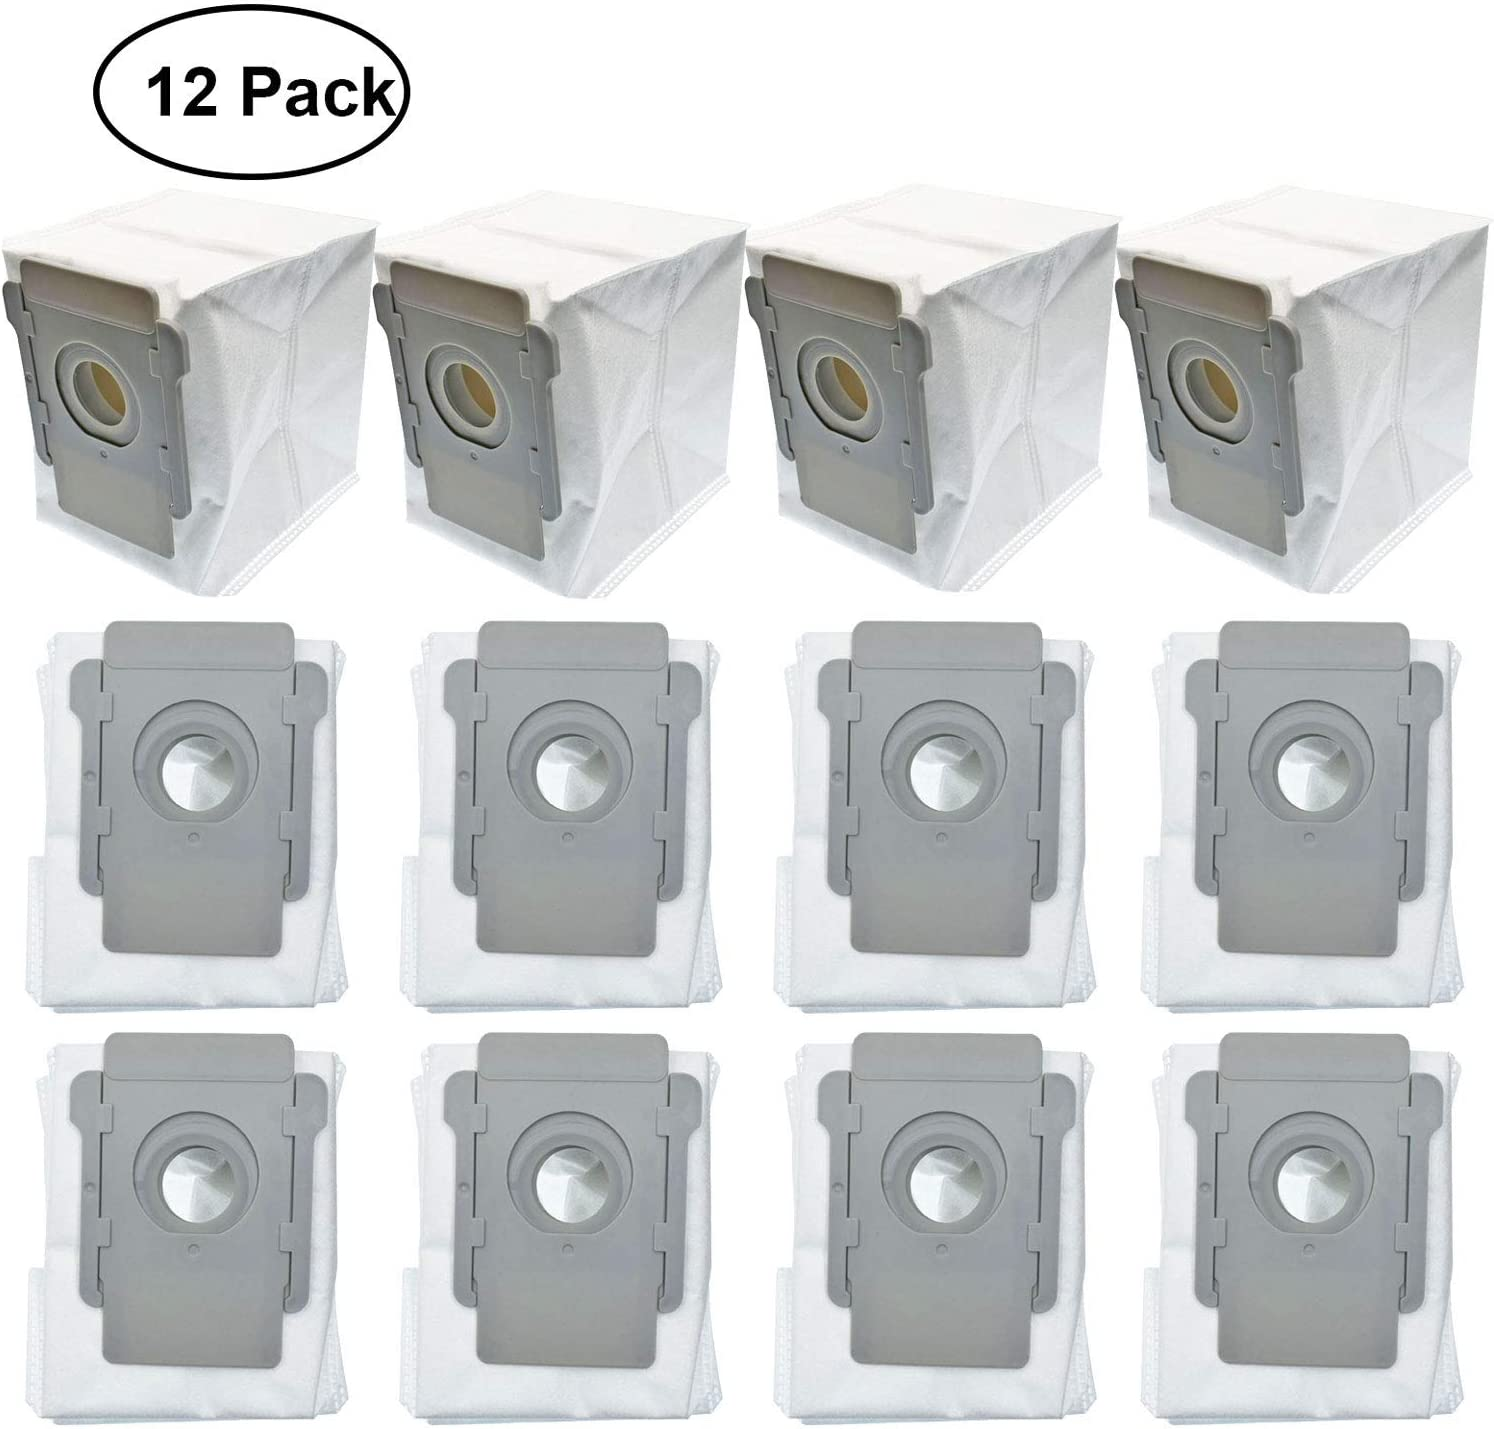 Amazon Com Lemige 12 Packs Vacuum Bags For Irobot Roomba I7 I7 Plus S9 9550 Clean Base Automatic Dirt Disposal Bags